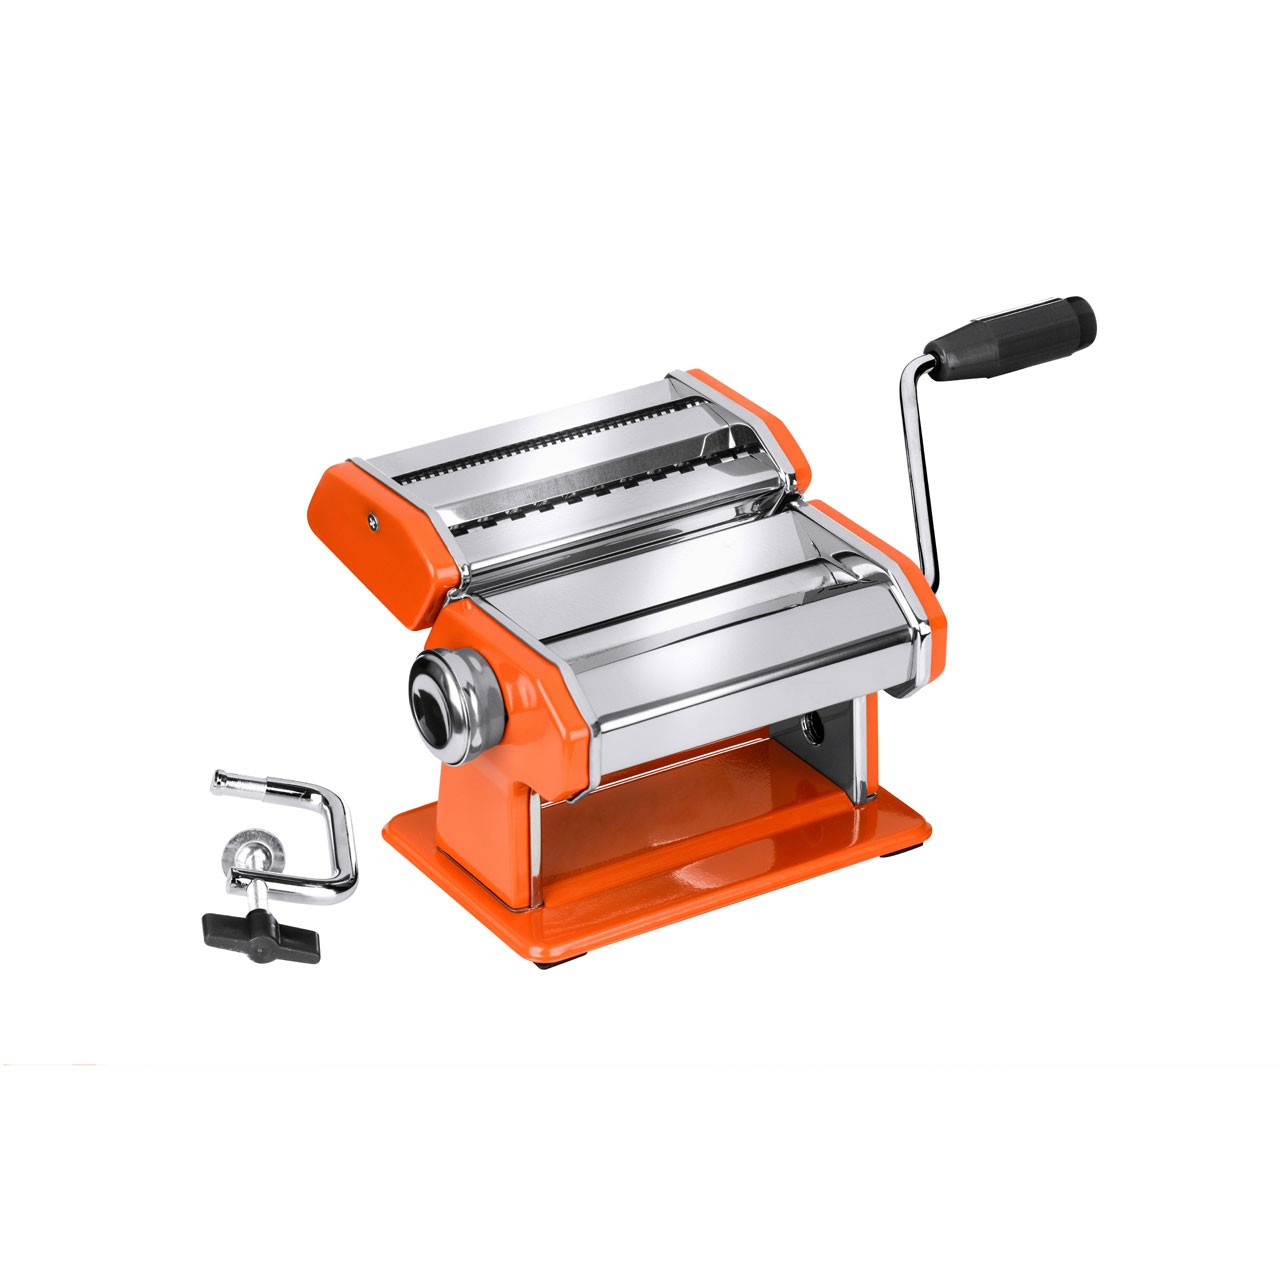 Stainless Steel Pasta Maker - Orange